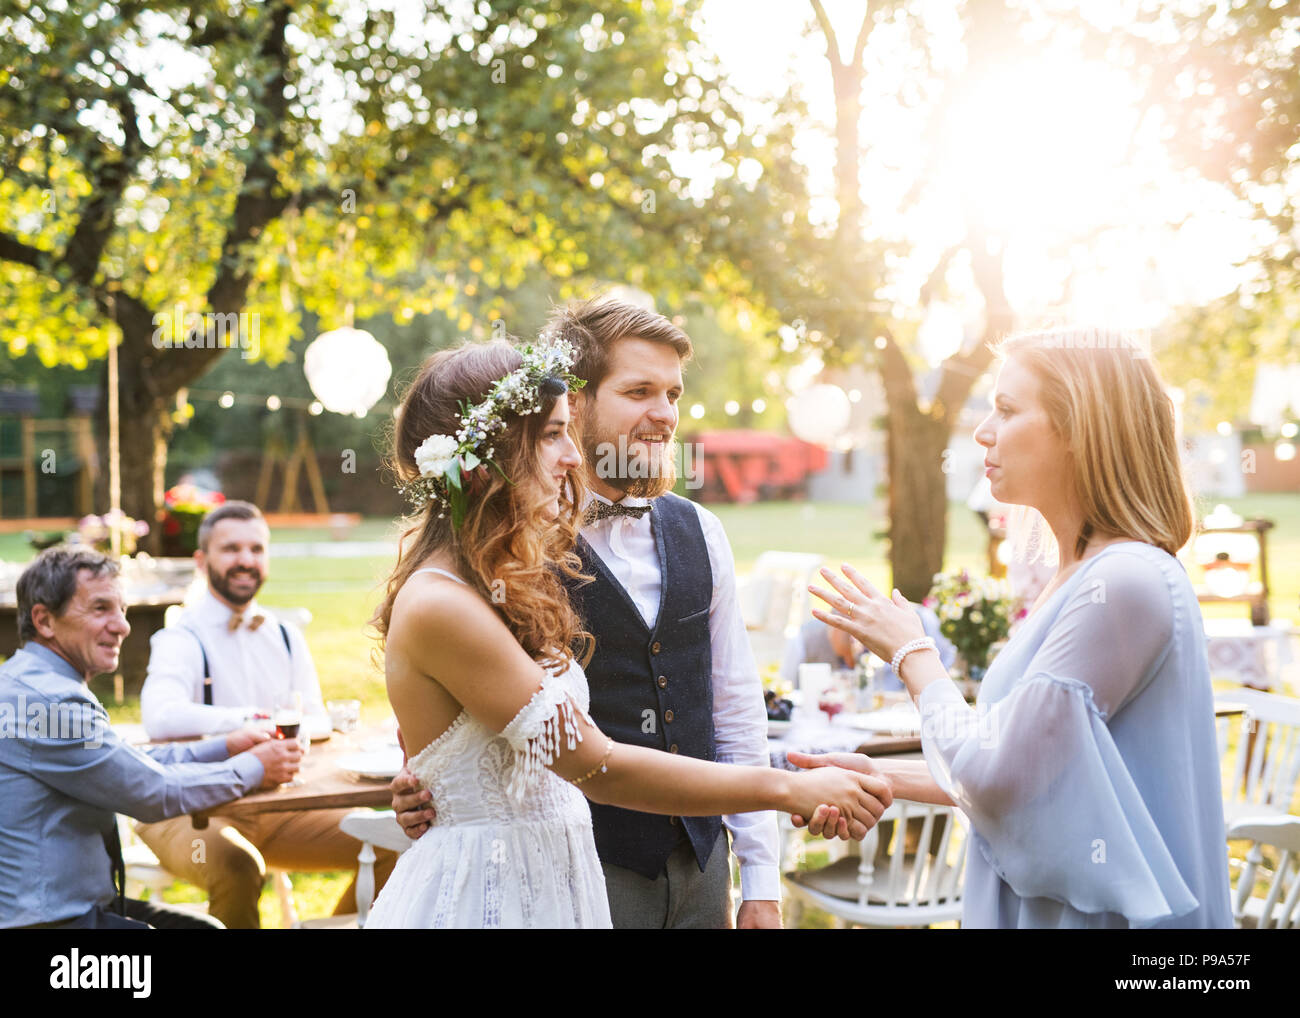 young girl congratulating bride and groom at wedding reception in the backyard